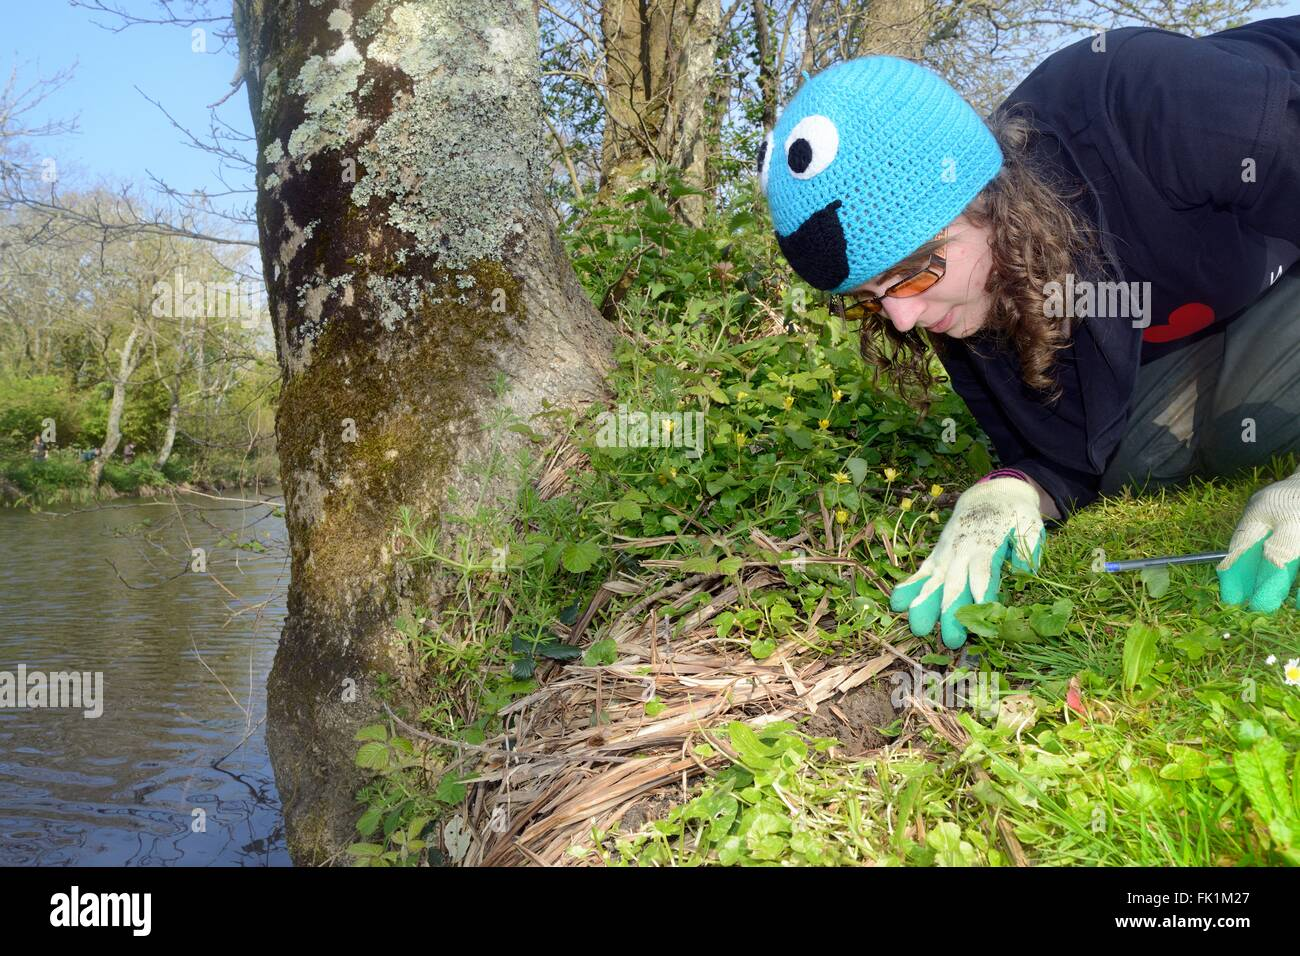 Active Water vole (Arvicola amphibius) burrow on the banks of a small lake inspected during a survey after a UK - Stock Image